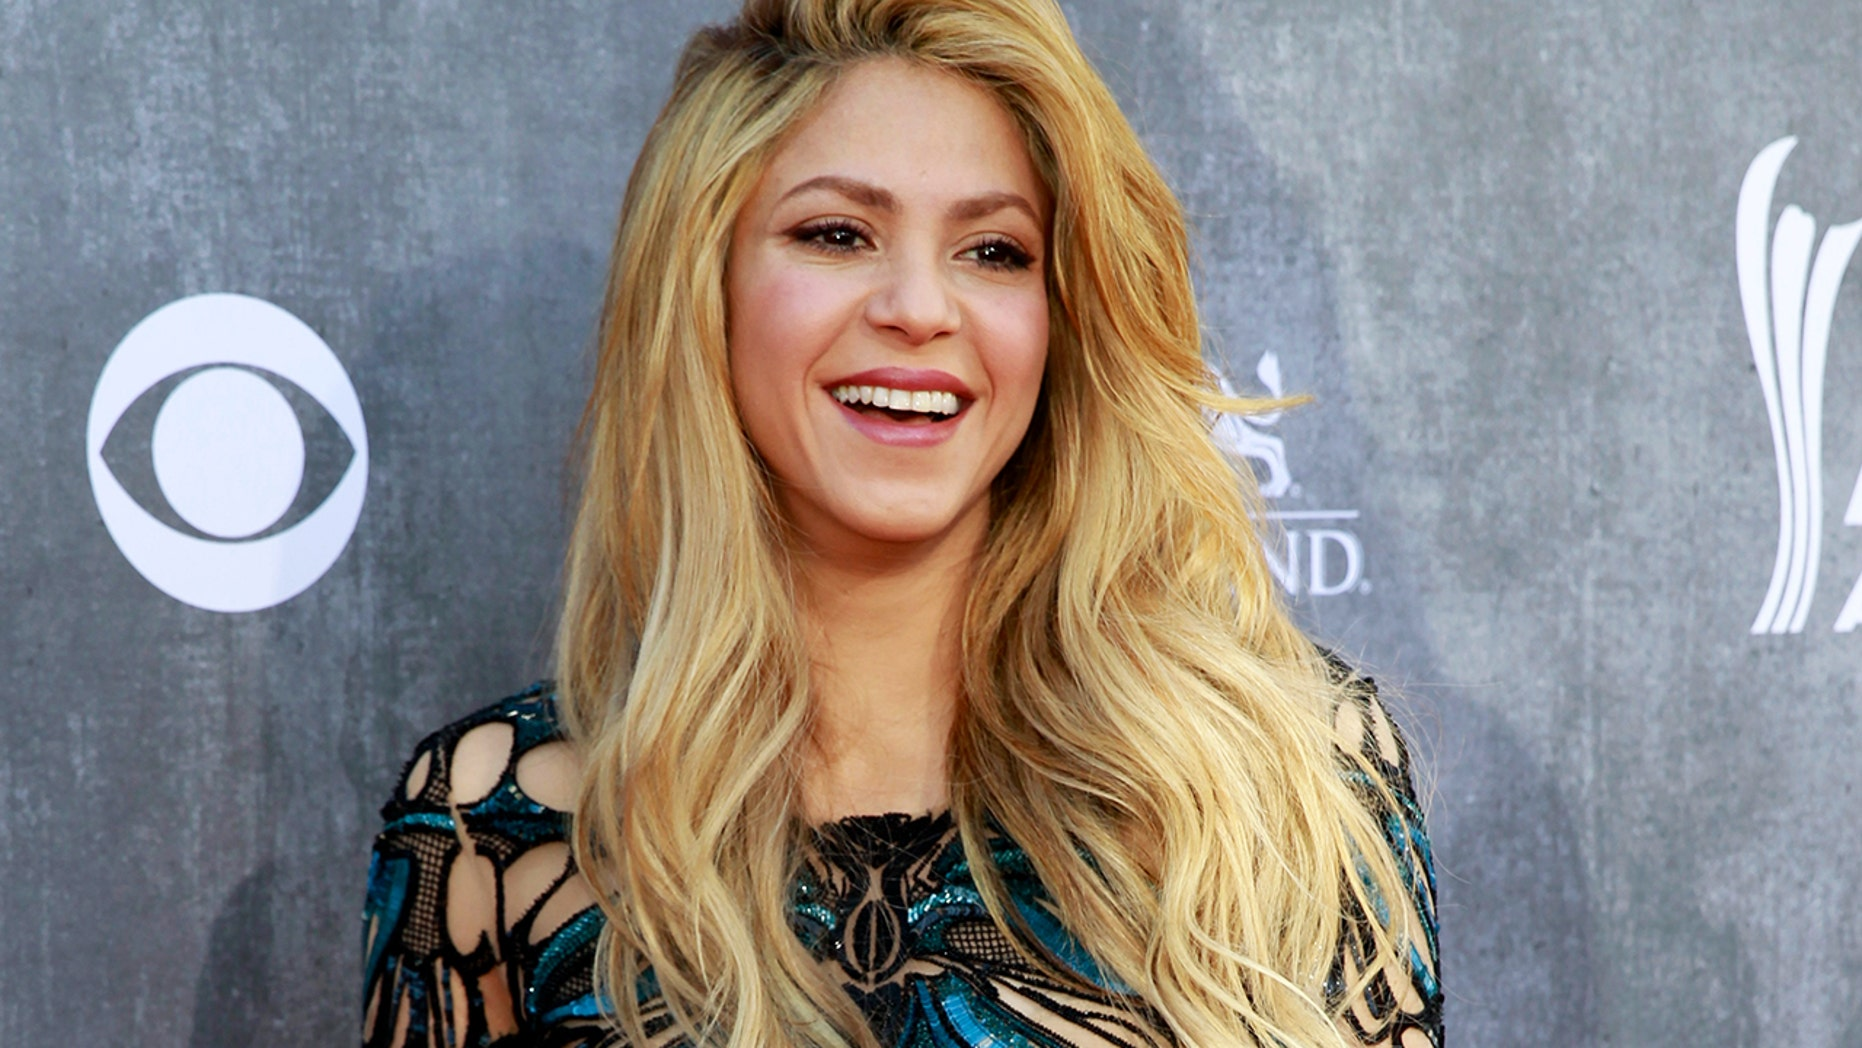 Shakira swapped out her signature blonde hair for a fiery new red color